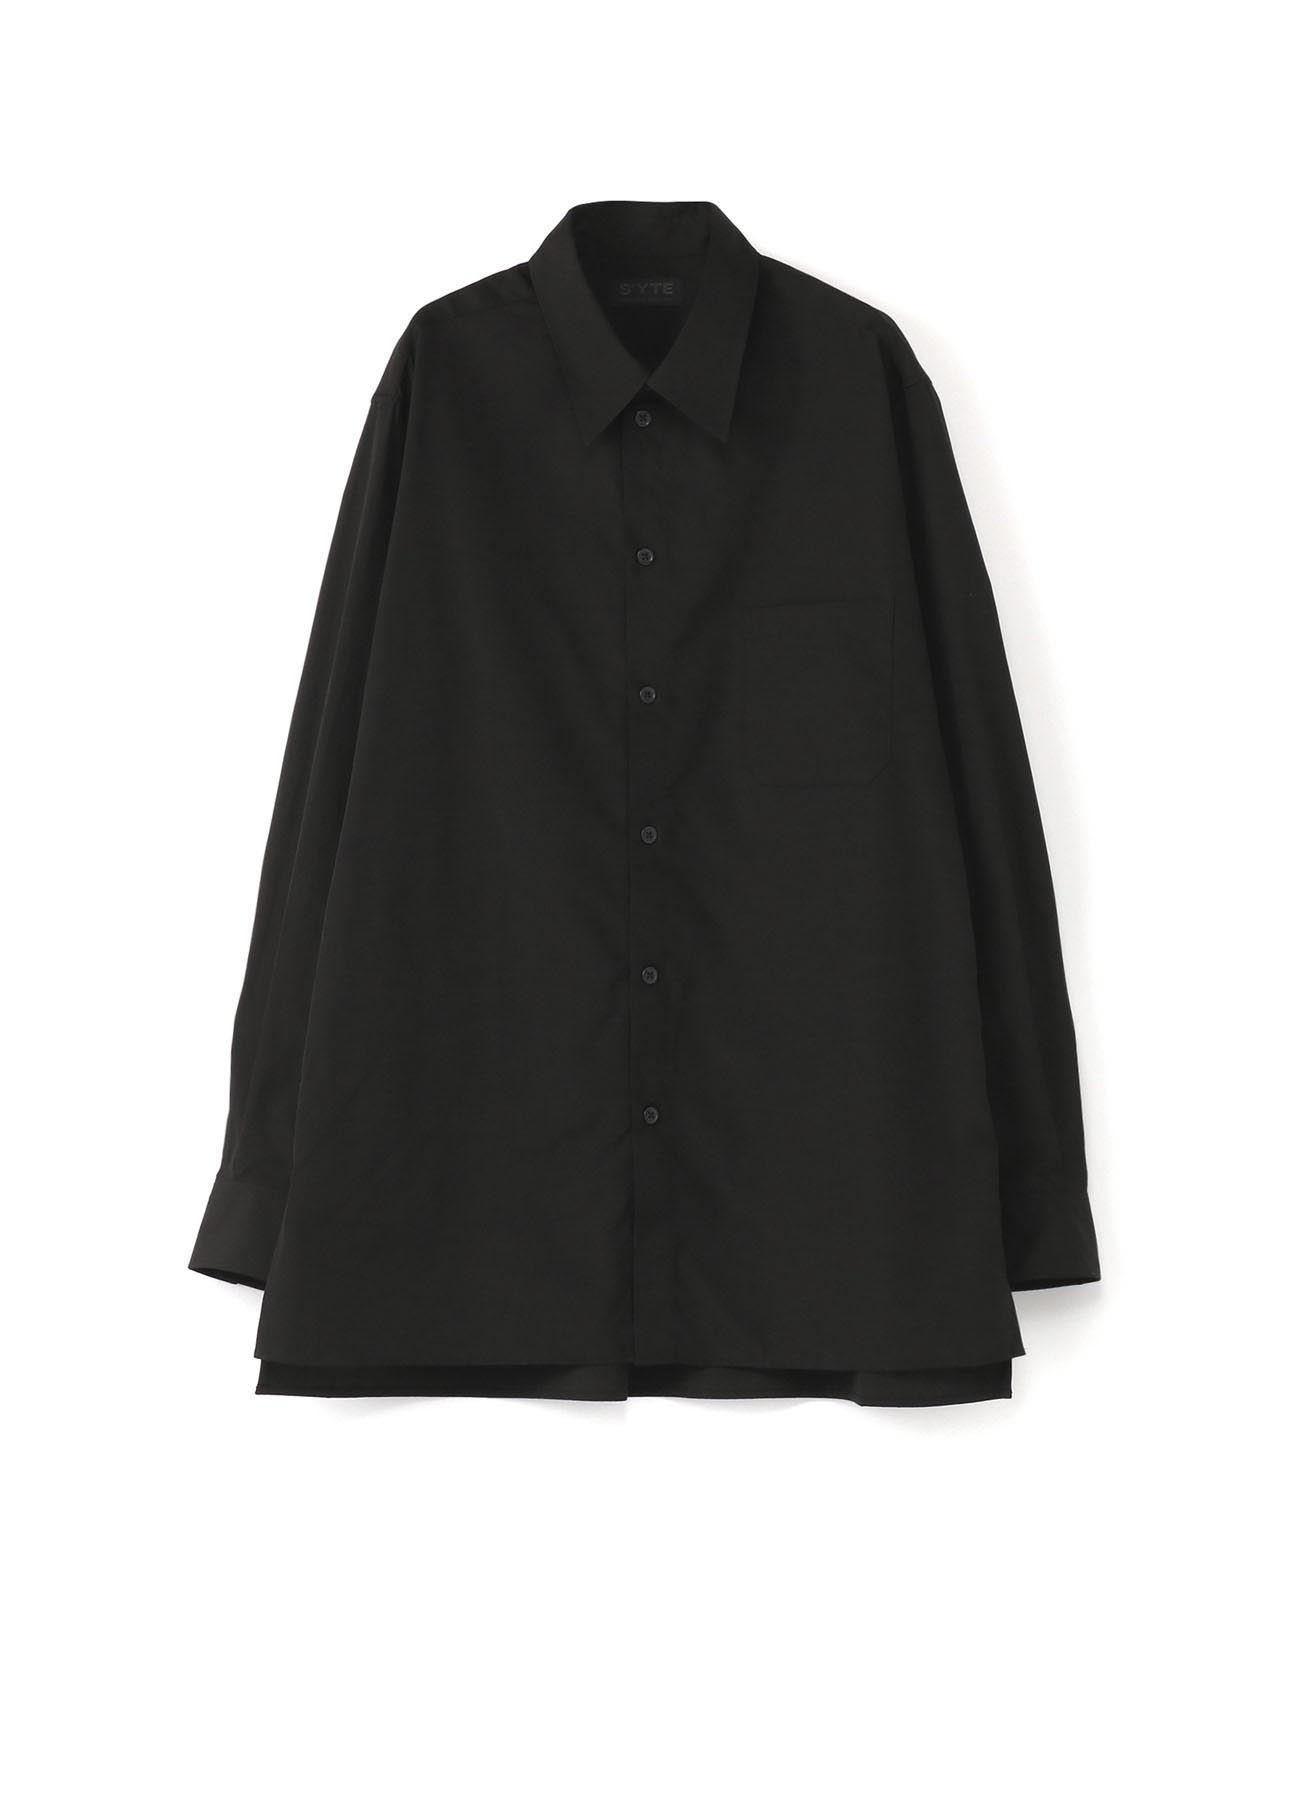 100/2 Broad Regular Collar Shirt